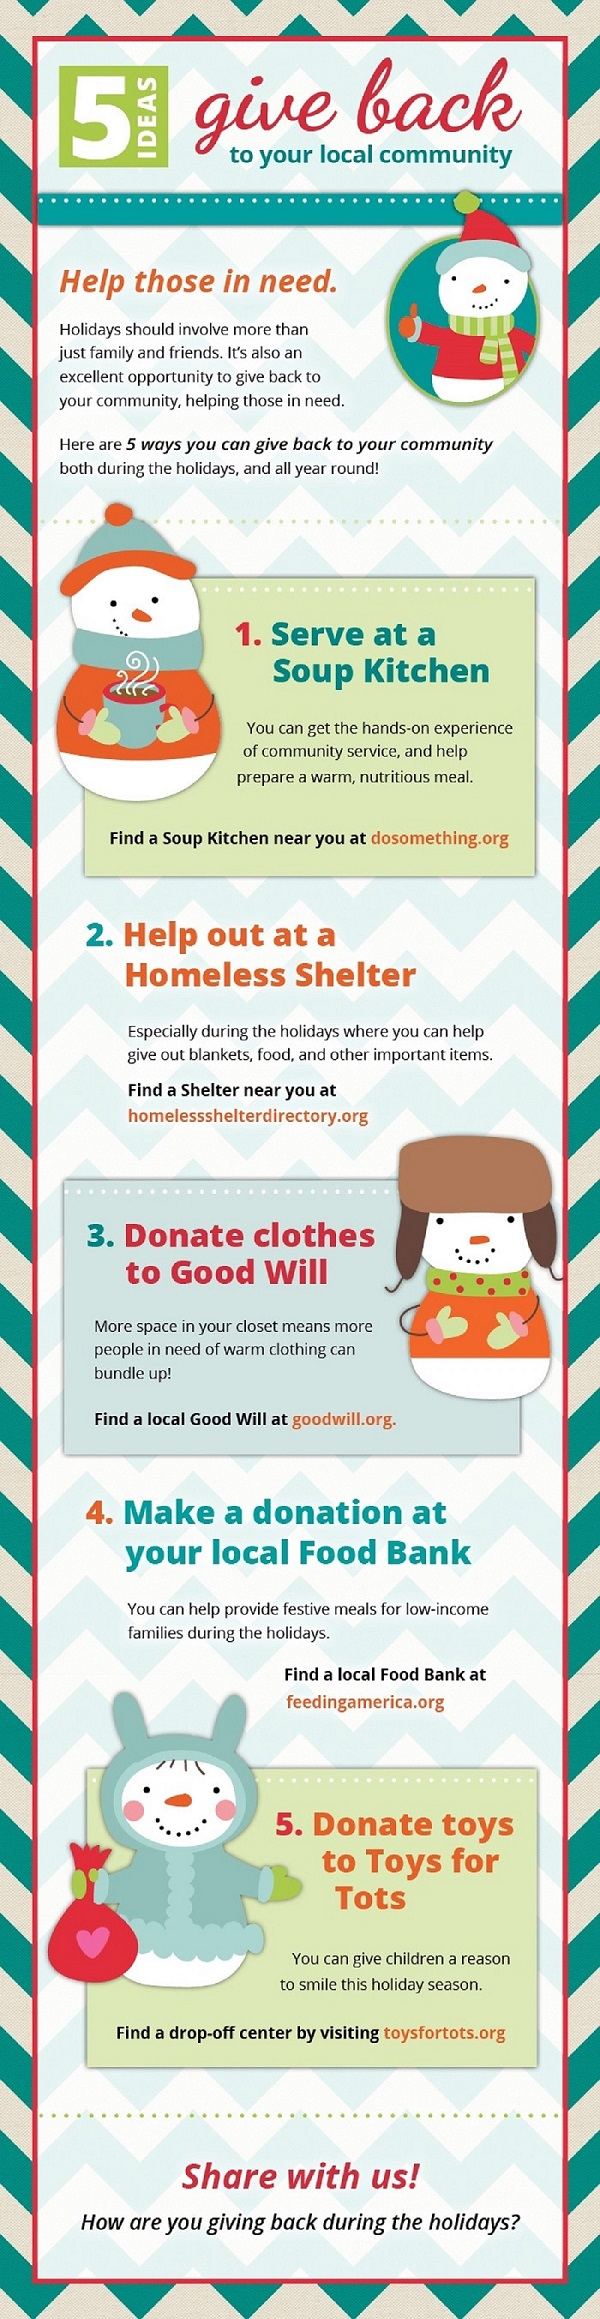 HolidayInfographic_GiveBack_web